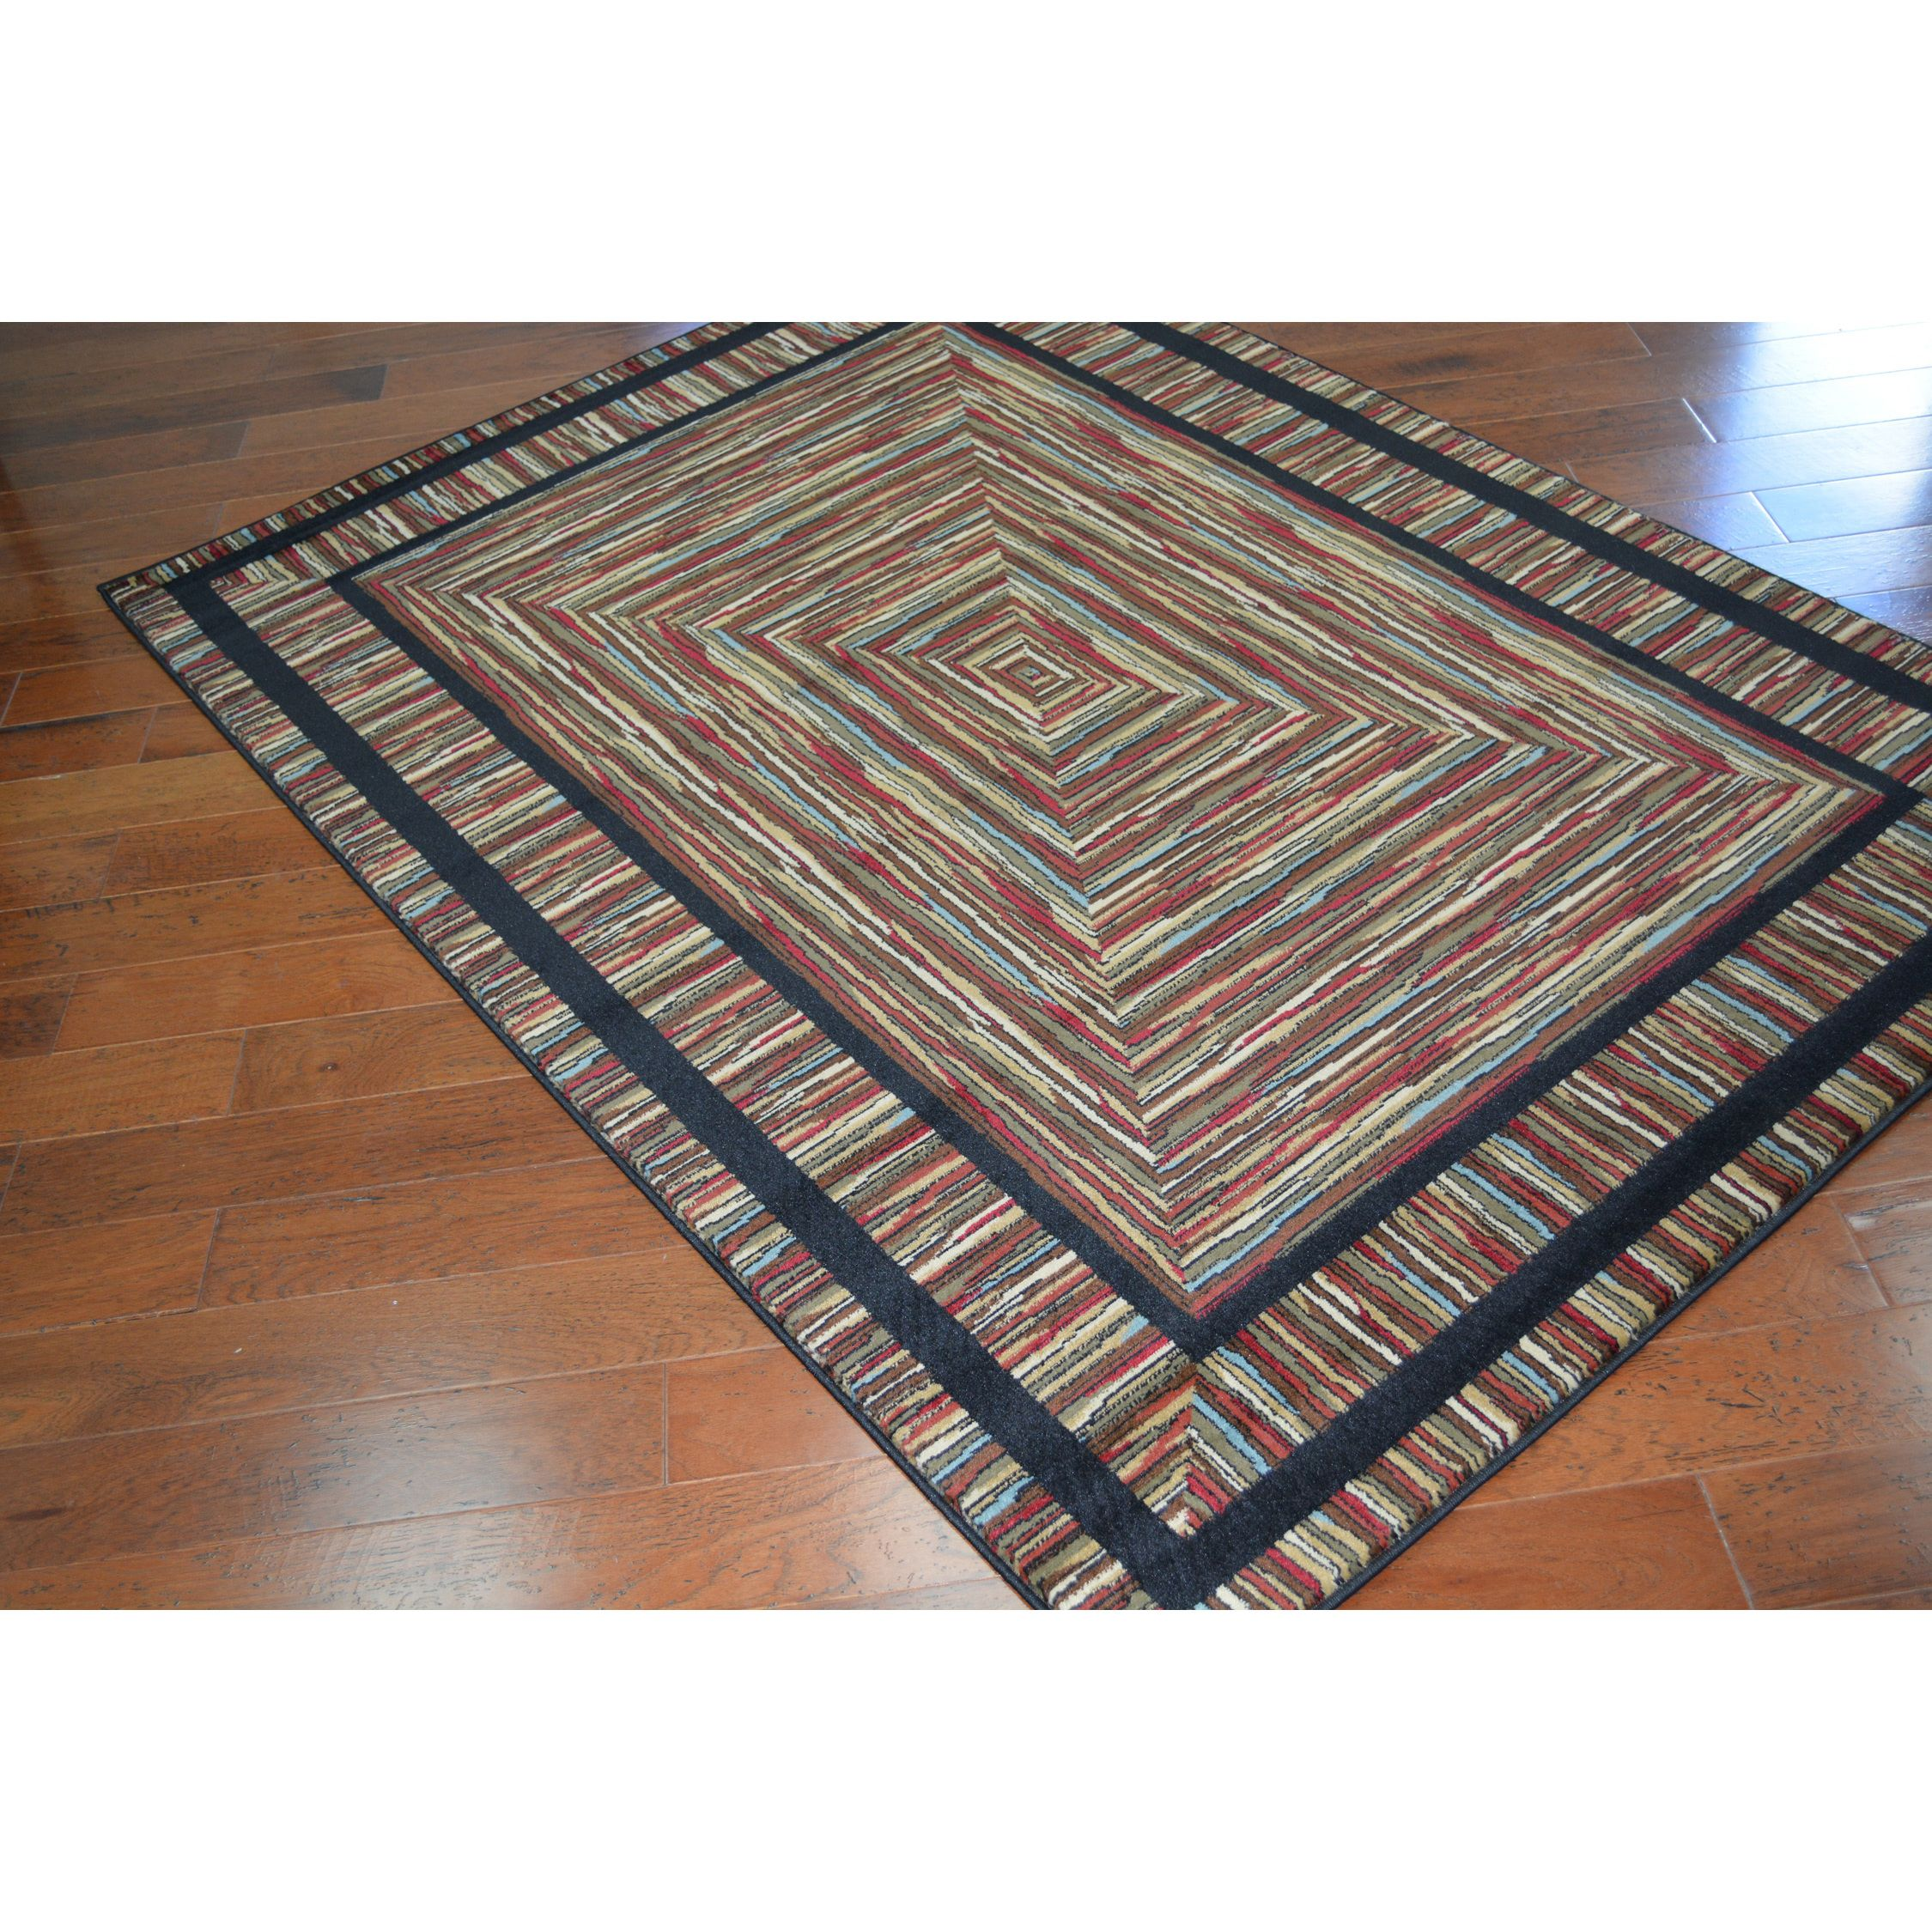 Color your home with this Rustic Lodge Barnsley woven rug. The rich colors and durable fabric of the rug will enhance the woodwork in your home. This striking rug has a unique pattern that will stand out in your home.